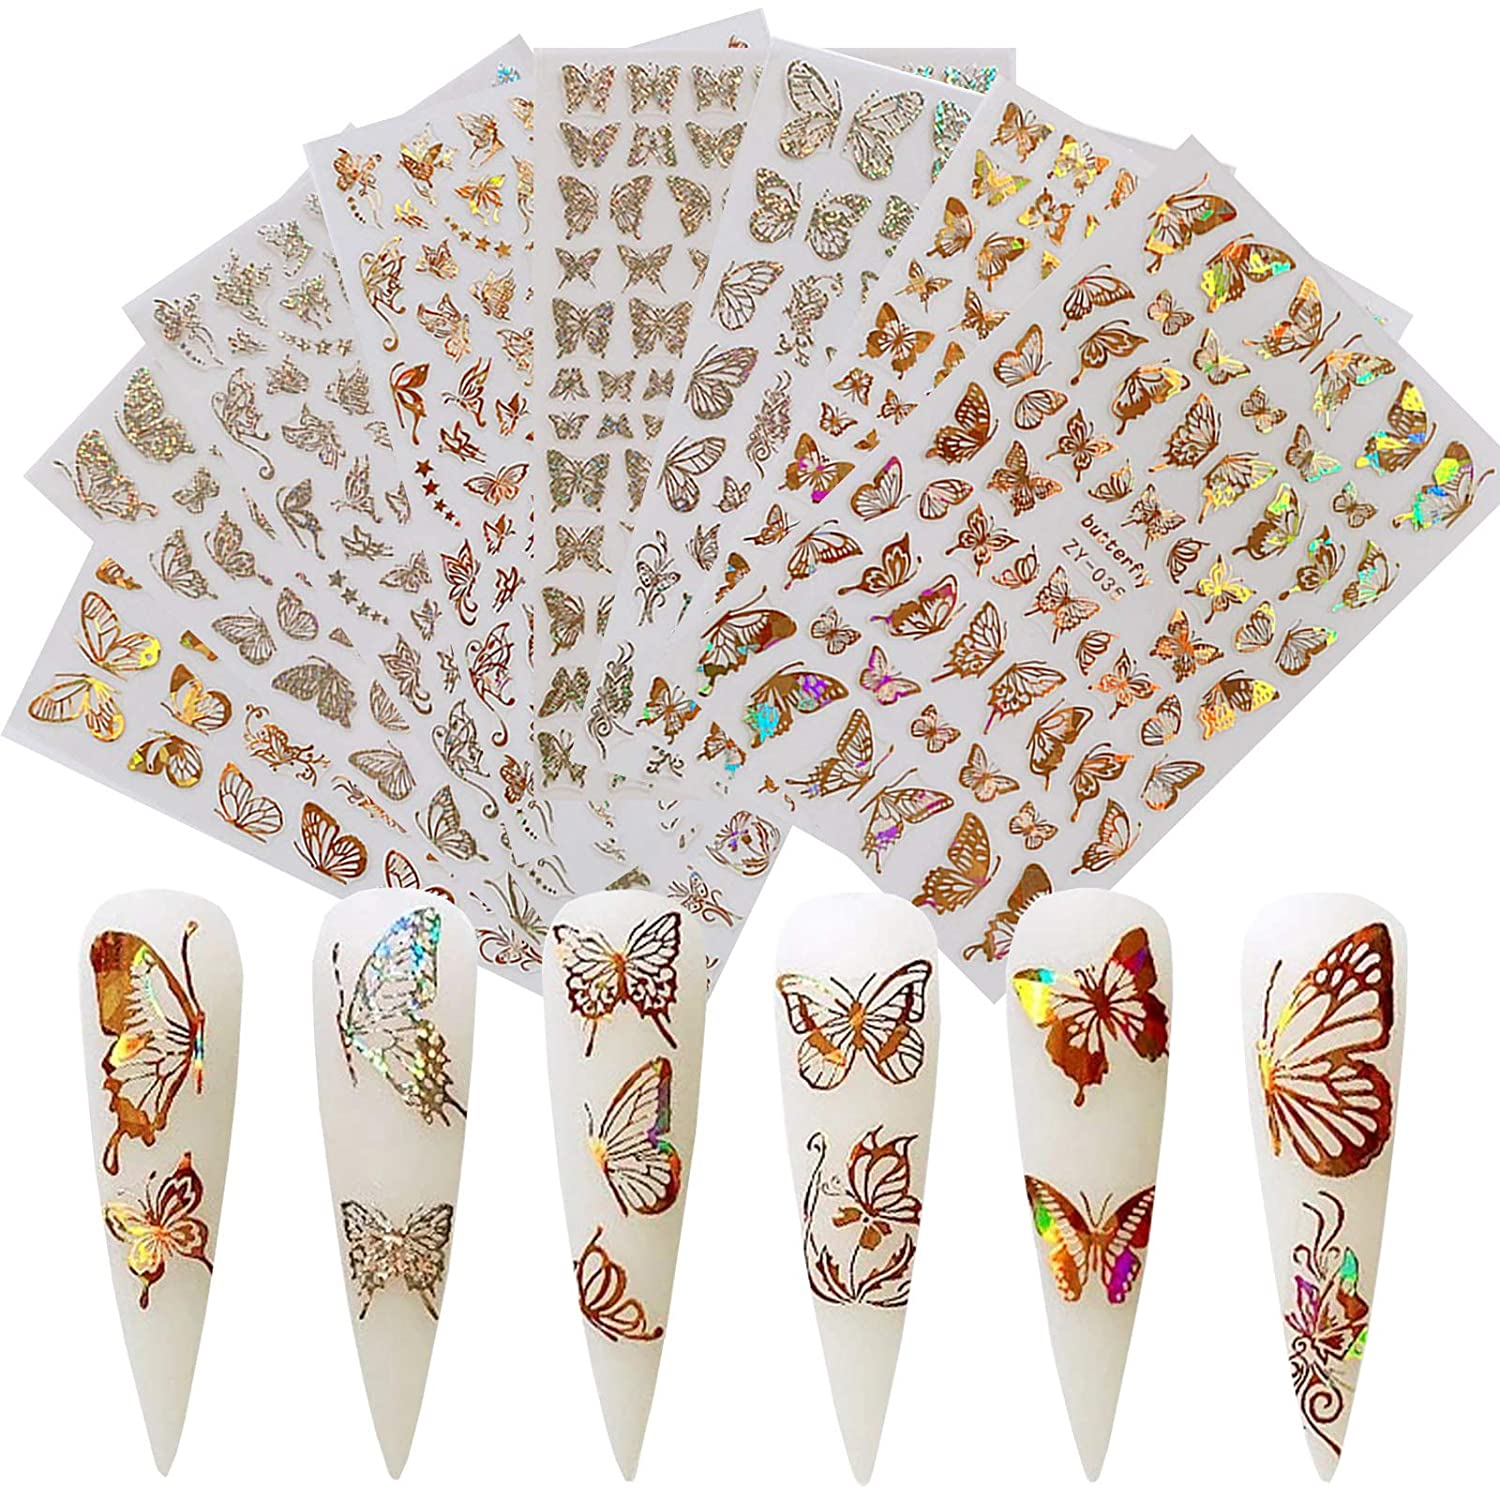 8 Sheets Product Butterfly Nail Art Accessories Sel Wholesale 3D Stickers